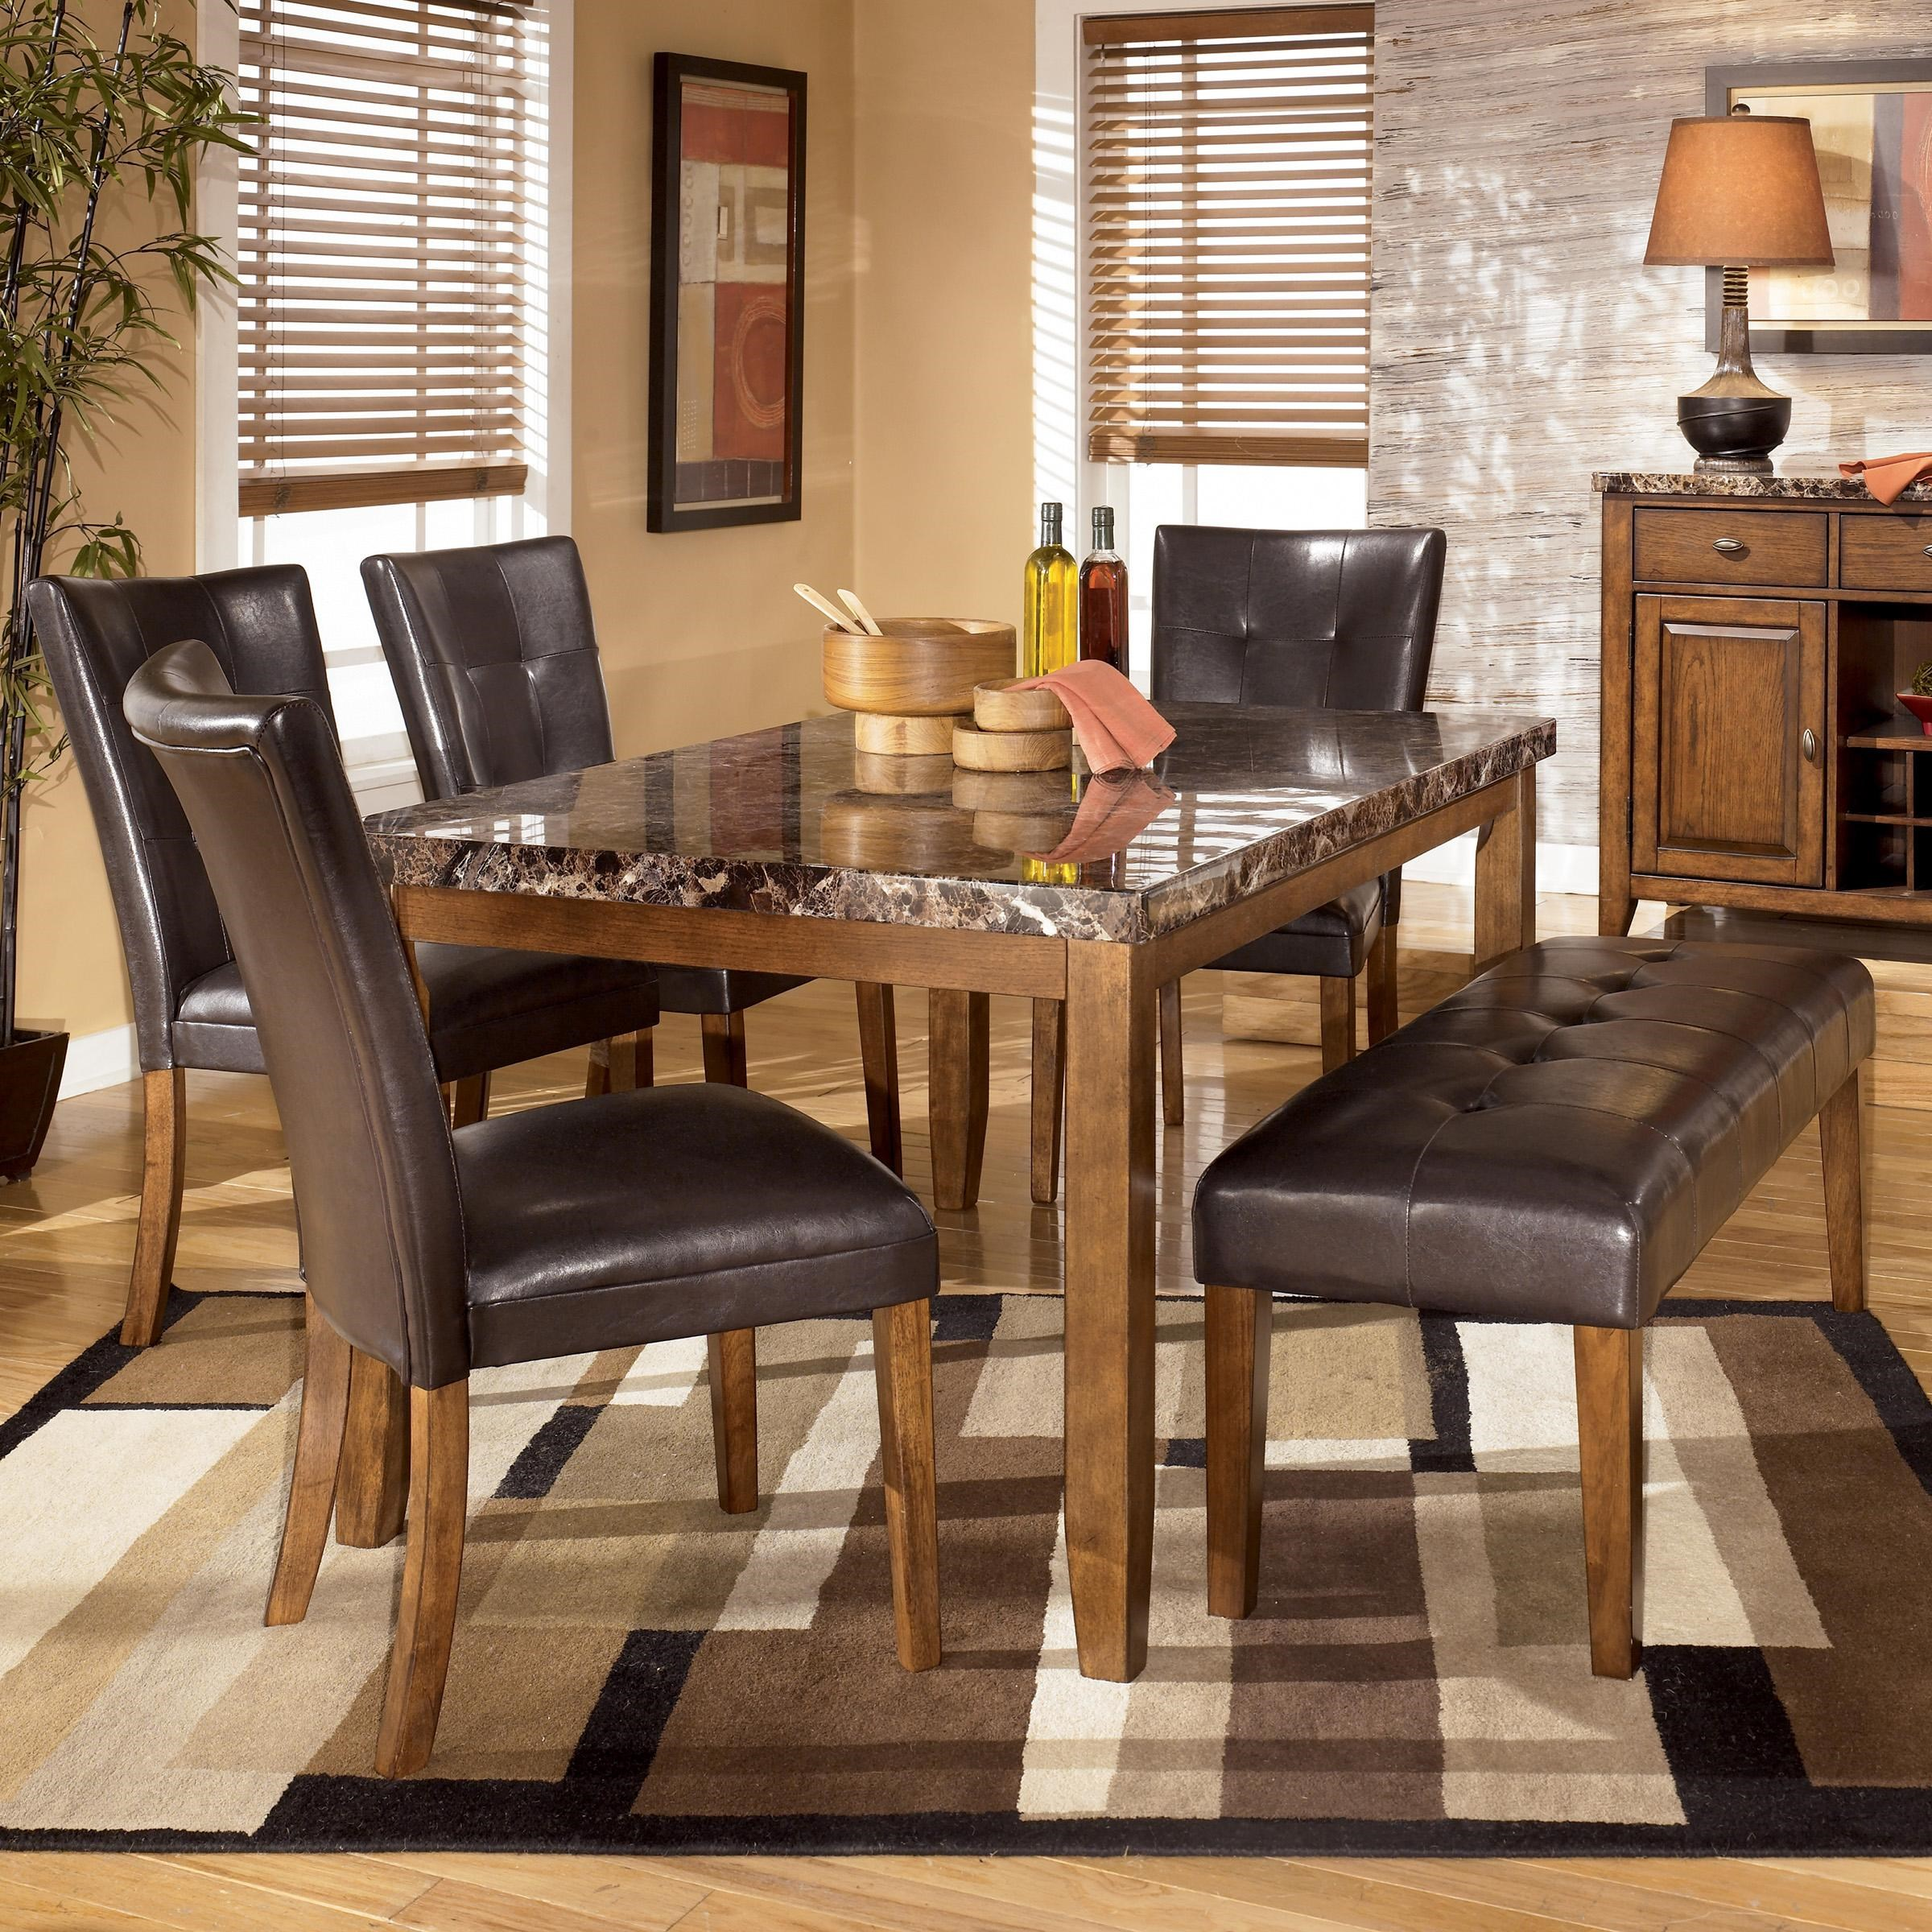 Signature Design by Ashley Lacey 6 Piece Dining Table with